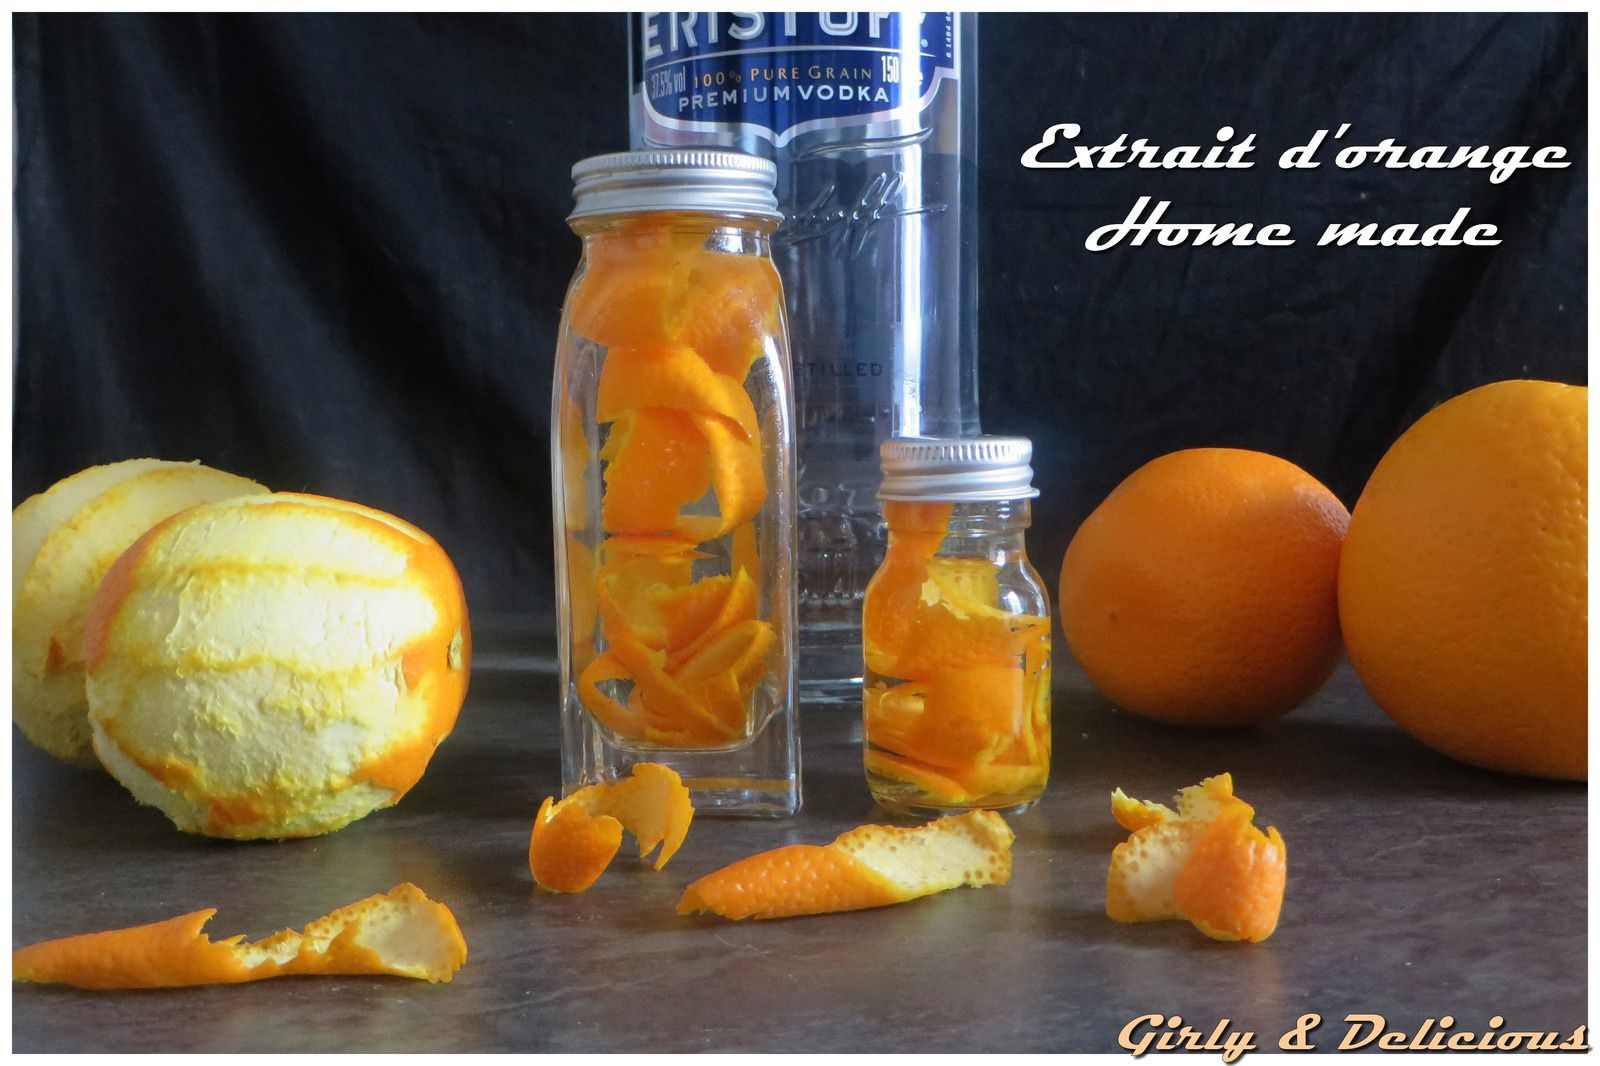 Extrait d'orange home made